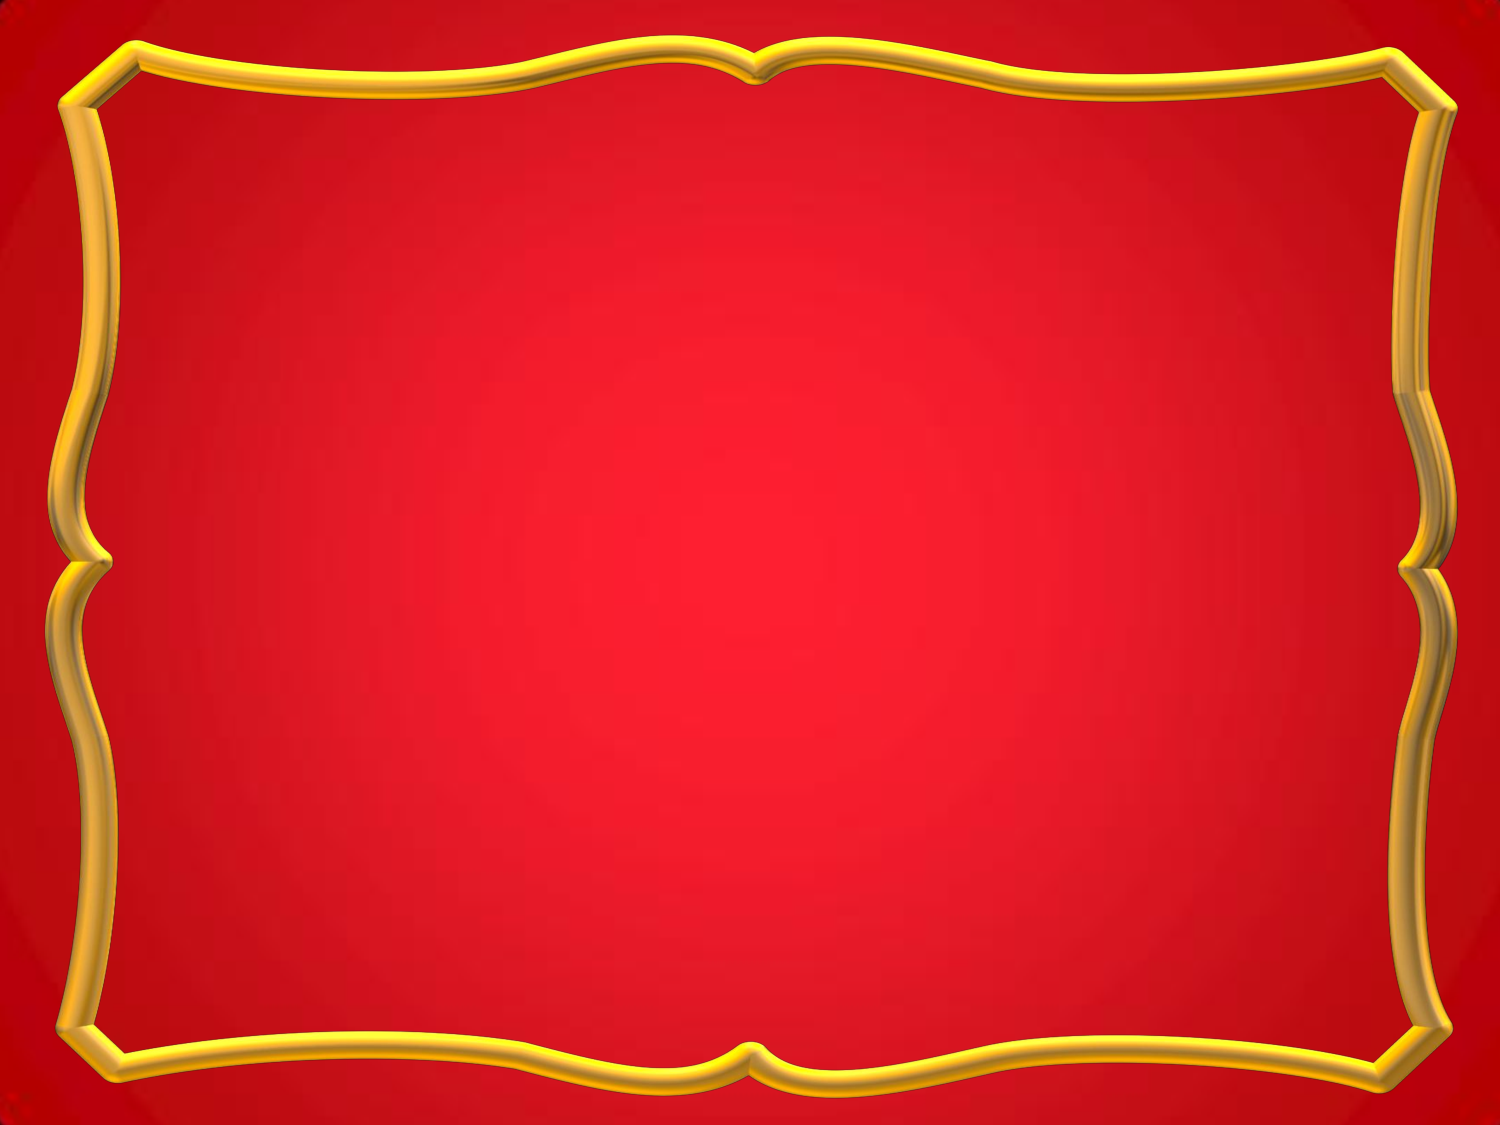 Free Frames and borders png | Red With Gold Frame Powerpoint Design ...